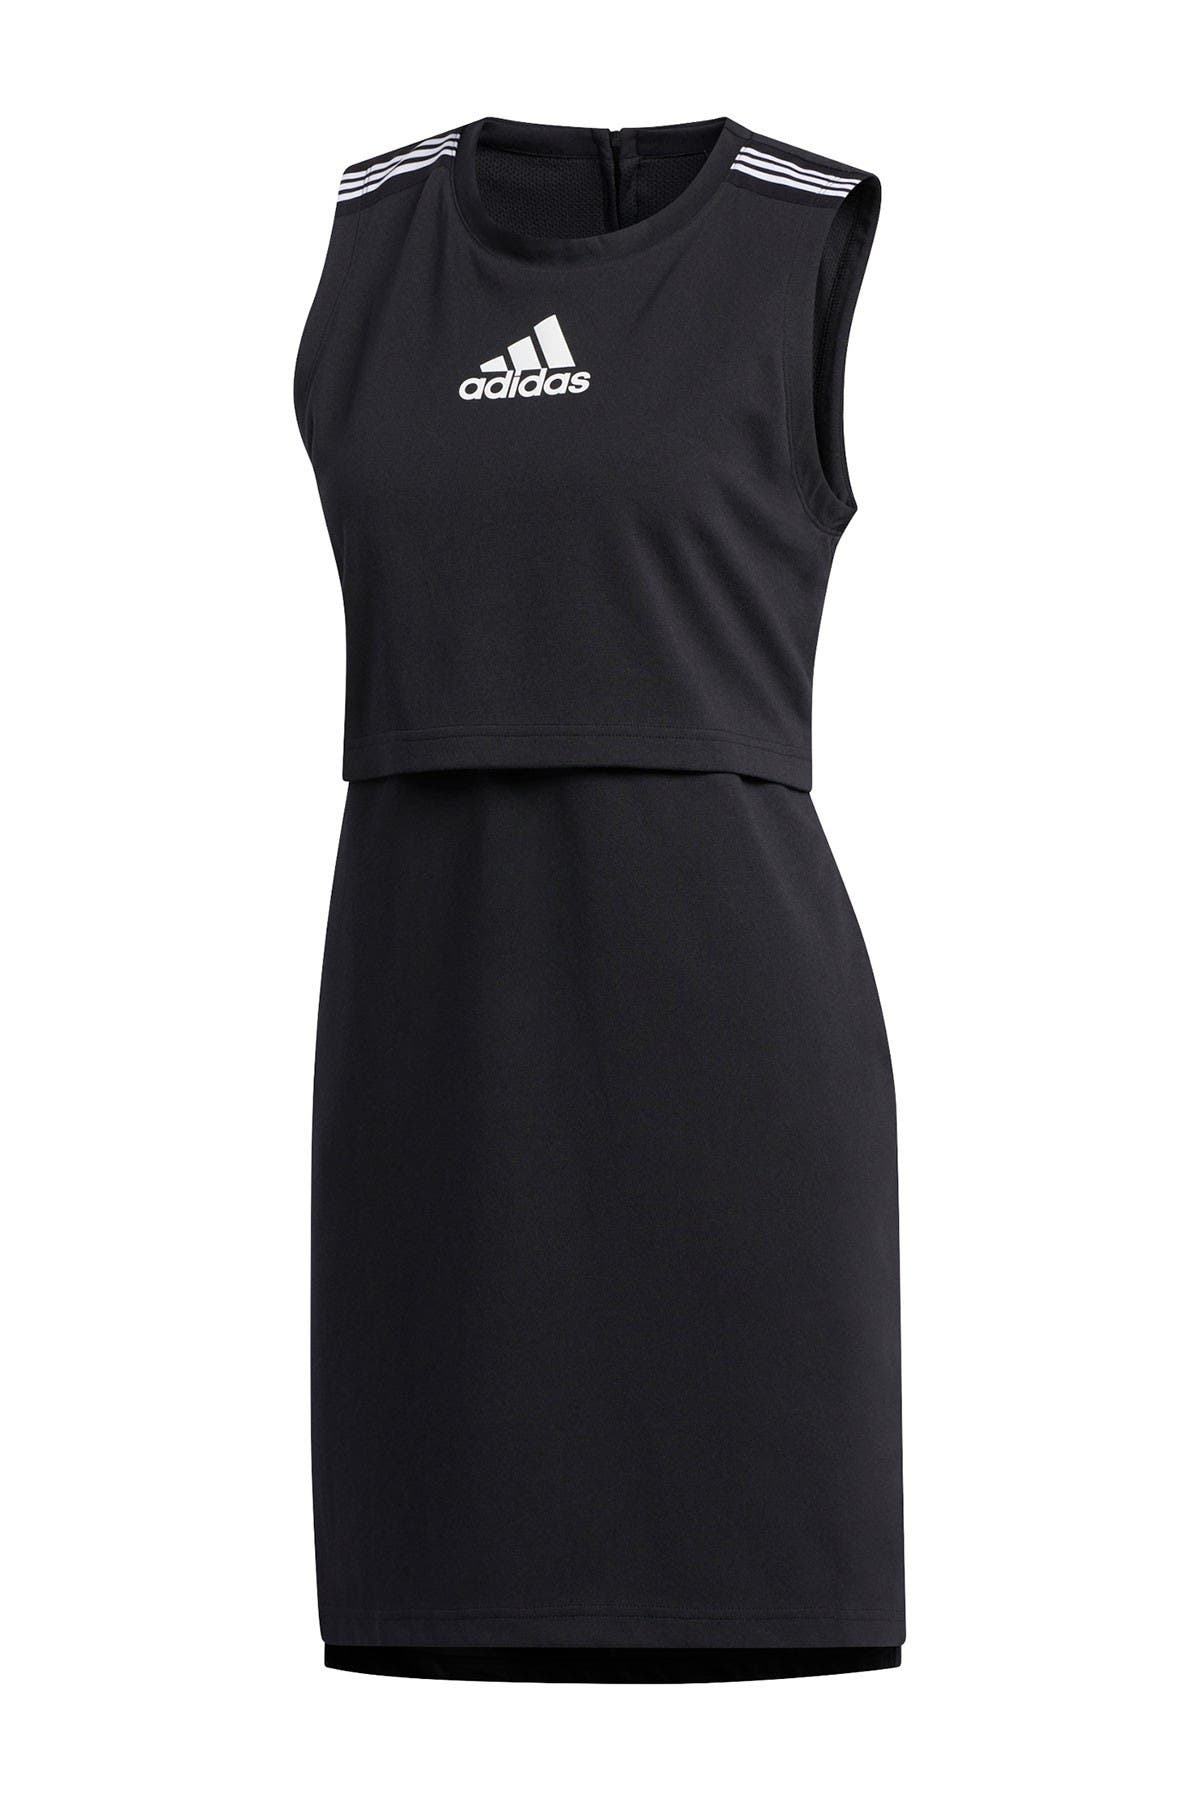 Image of adidas Logo Sleeveless Sheath Dress